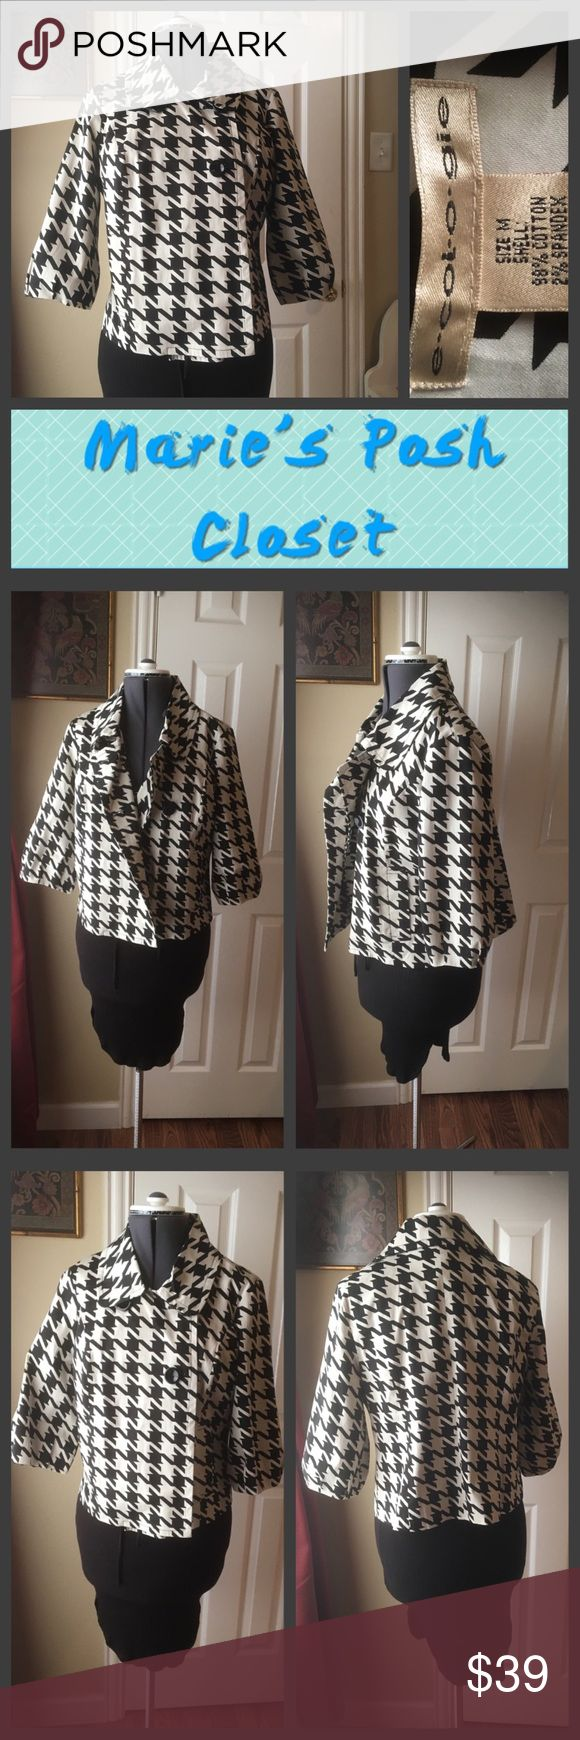 Houndstooth Jacket Lovely, large, black and white houndstooth checks on this short, jacket with 3/4 puffy sleeves and a broad brimmed collar. Kind of a trapeze style. e-col-o-gie Jackets & Coats Blazers